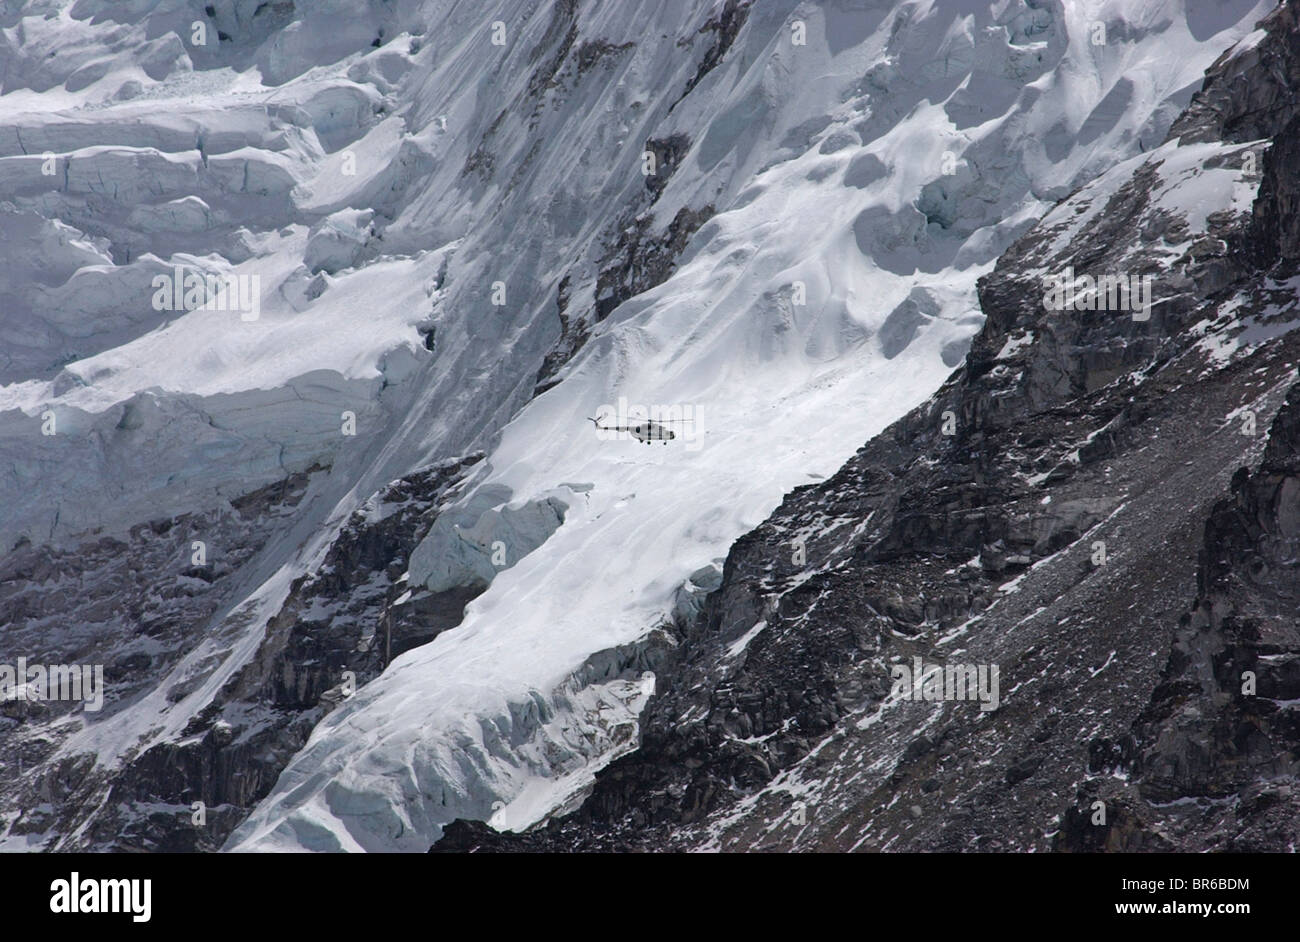 Helicopter rescuing climbers from Everest - Stock Image